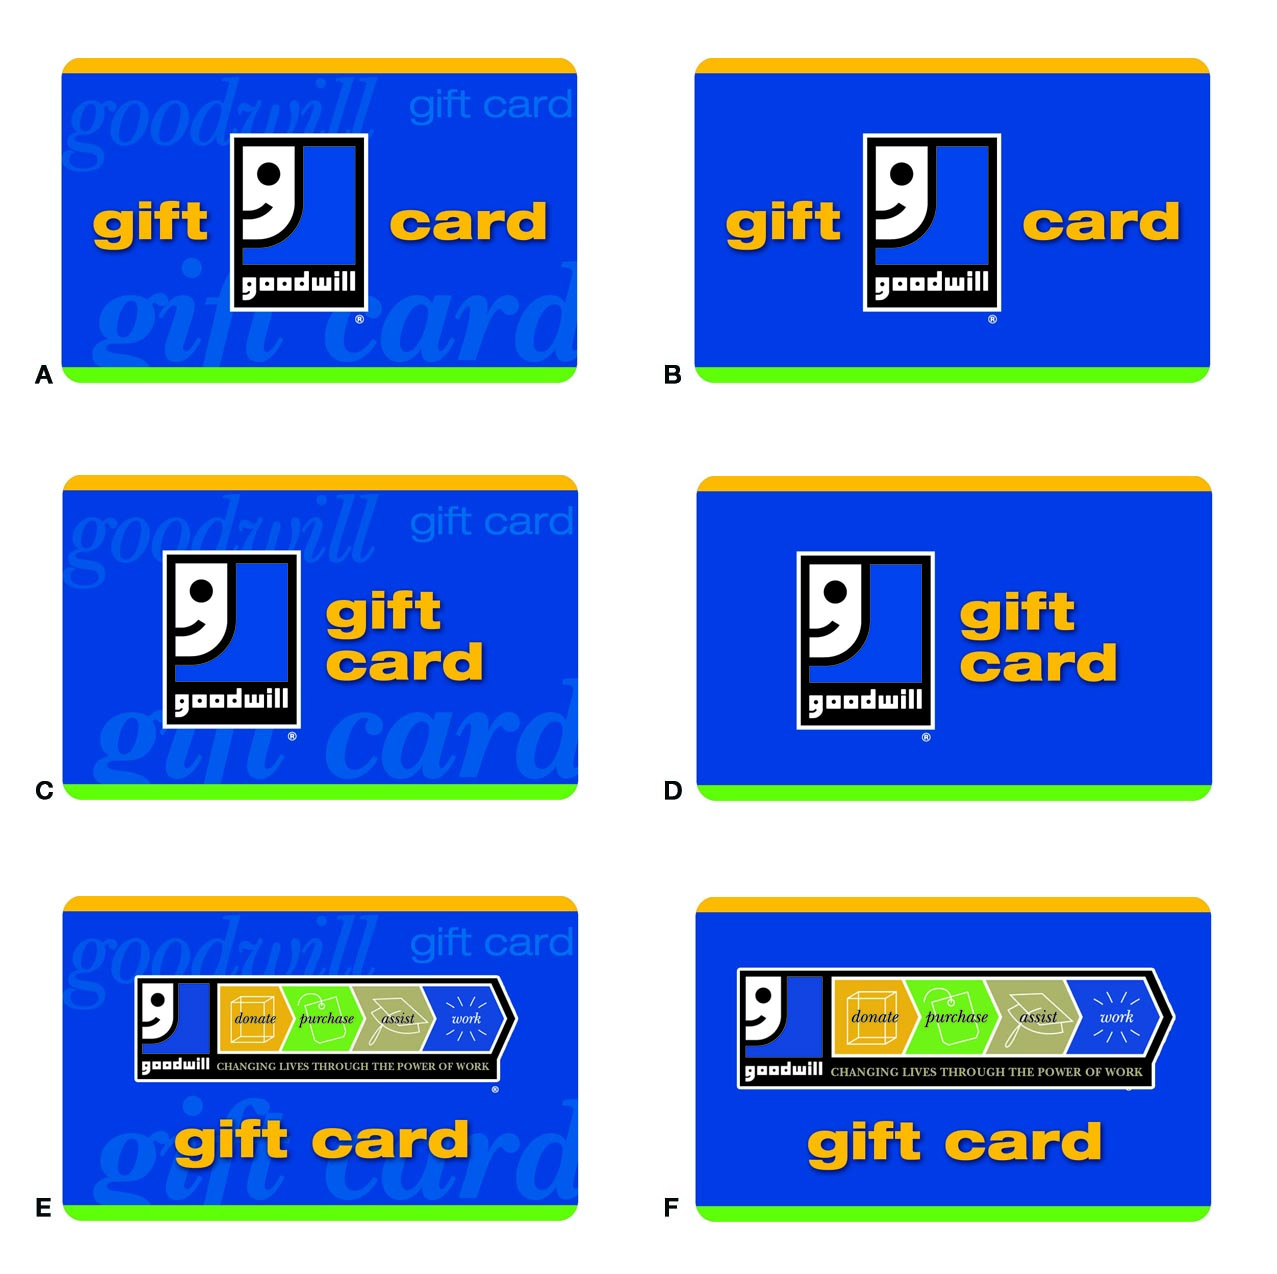 NO FEE eGift Card options vary by location and may be temporarily unavailable at some Kroger stores: Kroger, Dillon Food Stores, Food 4 Less, Fred Meyer, Fry's Food Stores, Jay C Food Store, King Soopers, Ralphs Grocery, Smith's Food & Drug, and Quality Food Centers.